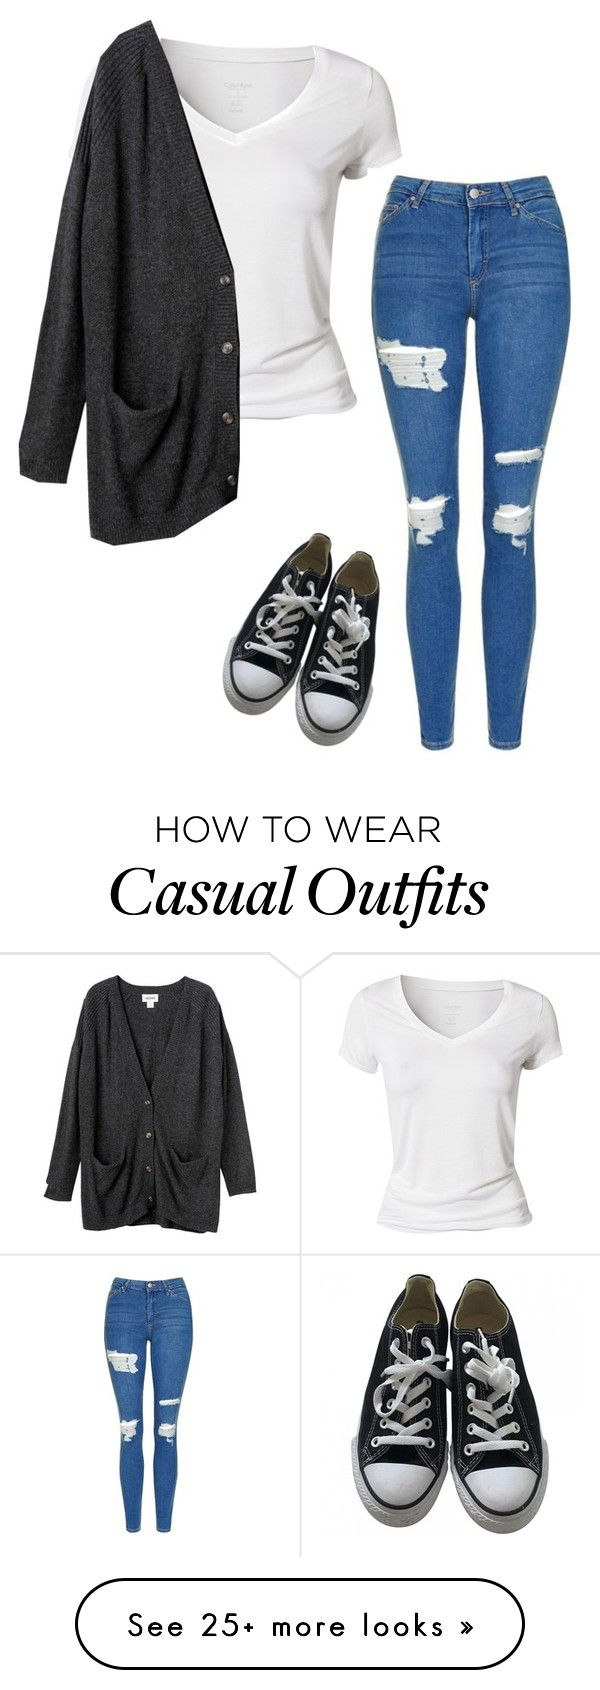 """crazy casual"" by darkartbeauty on Polyvore featuring Calvin Klein, Monki, Topshop and Converse"